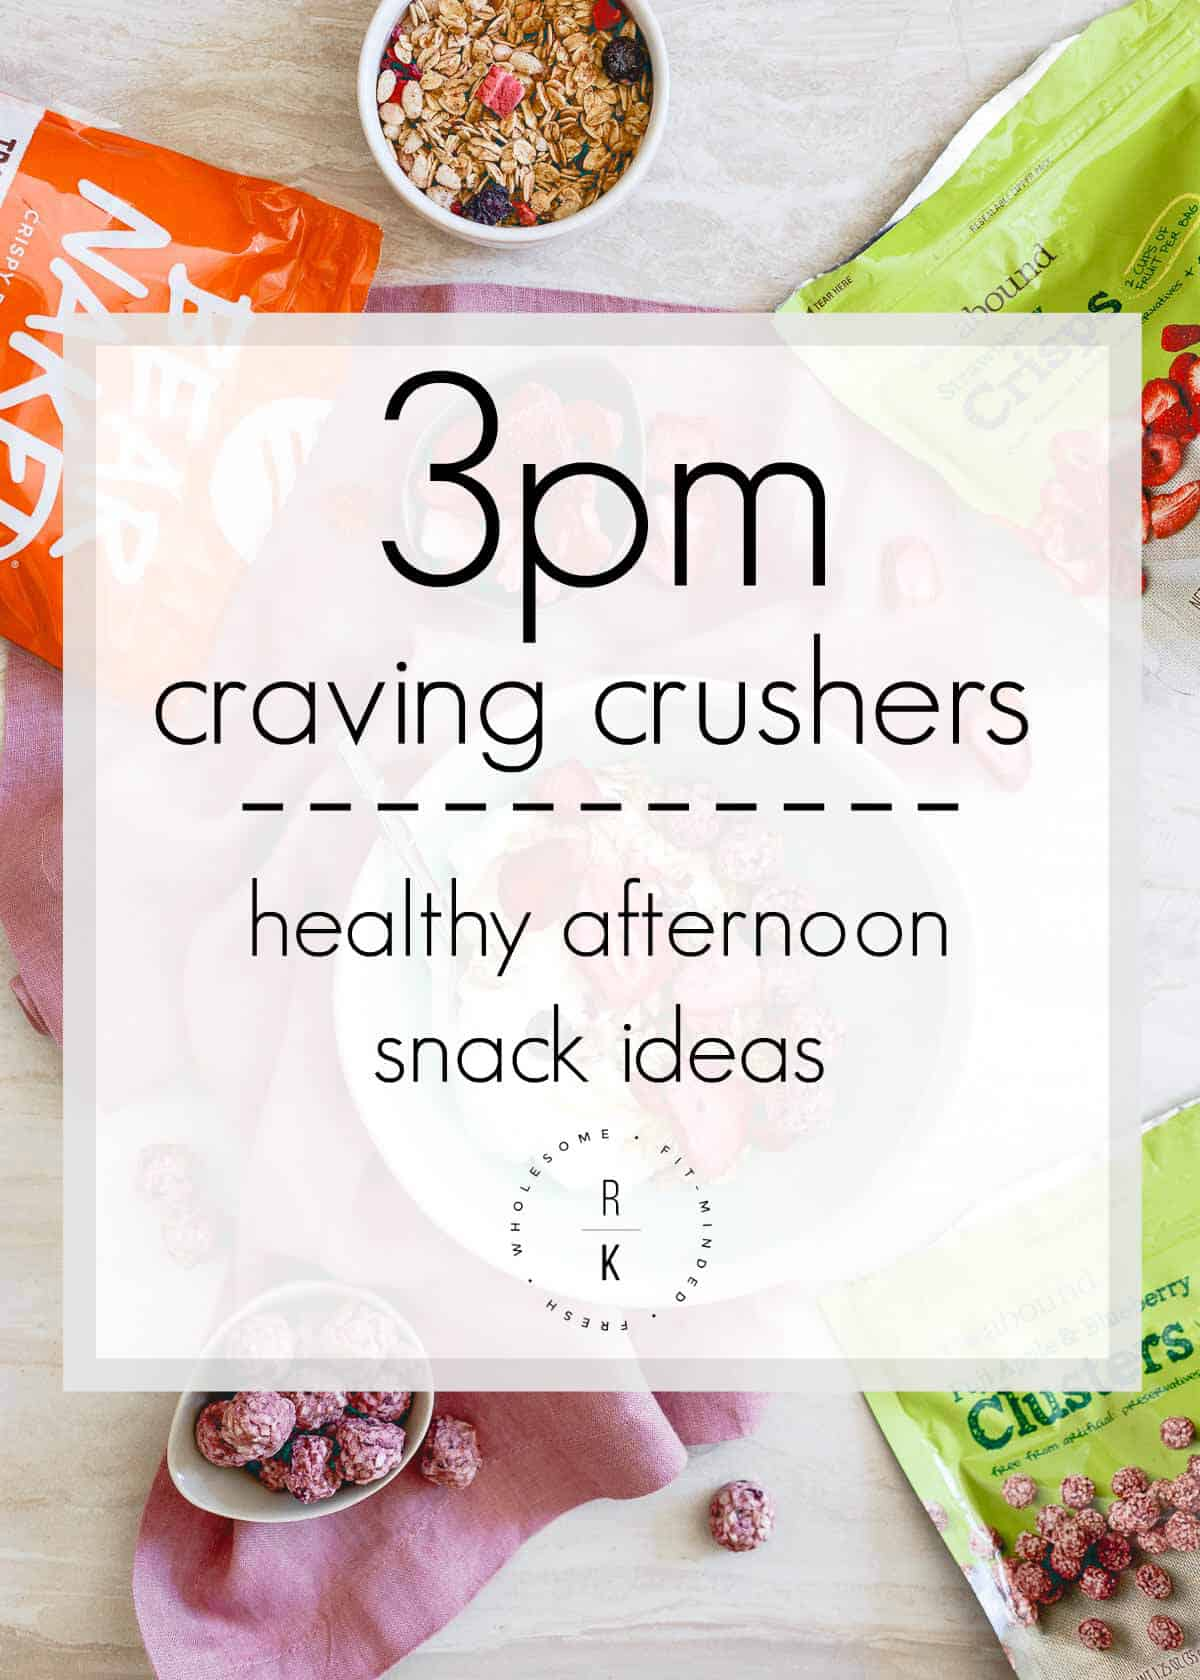 3pm Craving Crushers Healthy Afternoon Snack Ideas